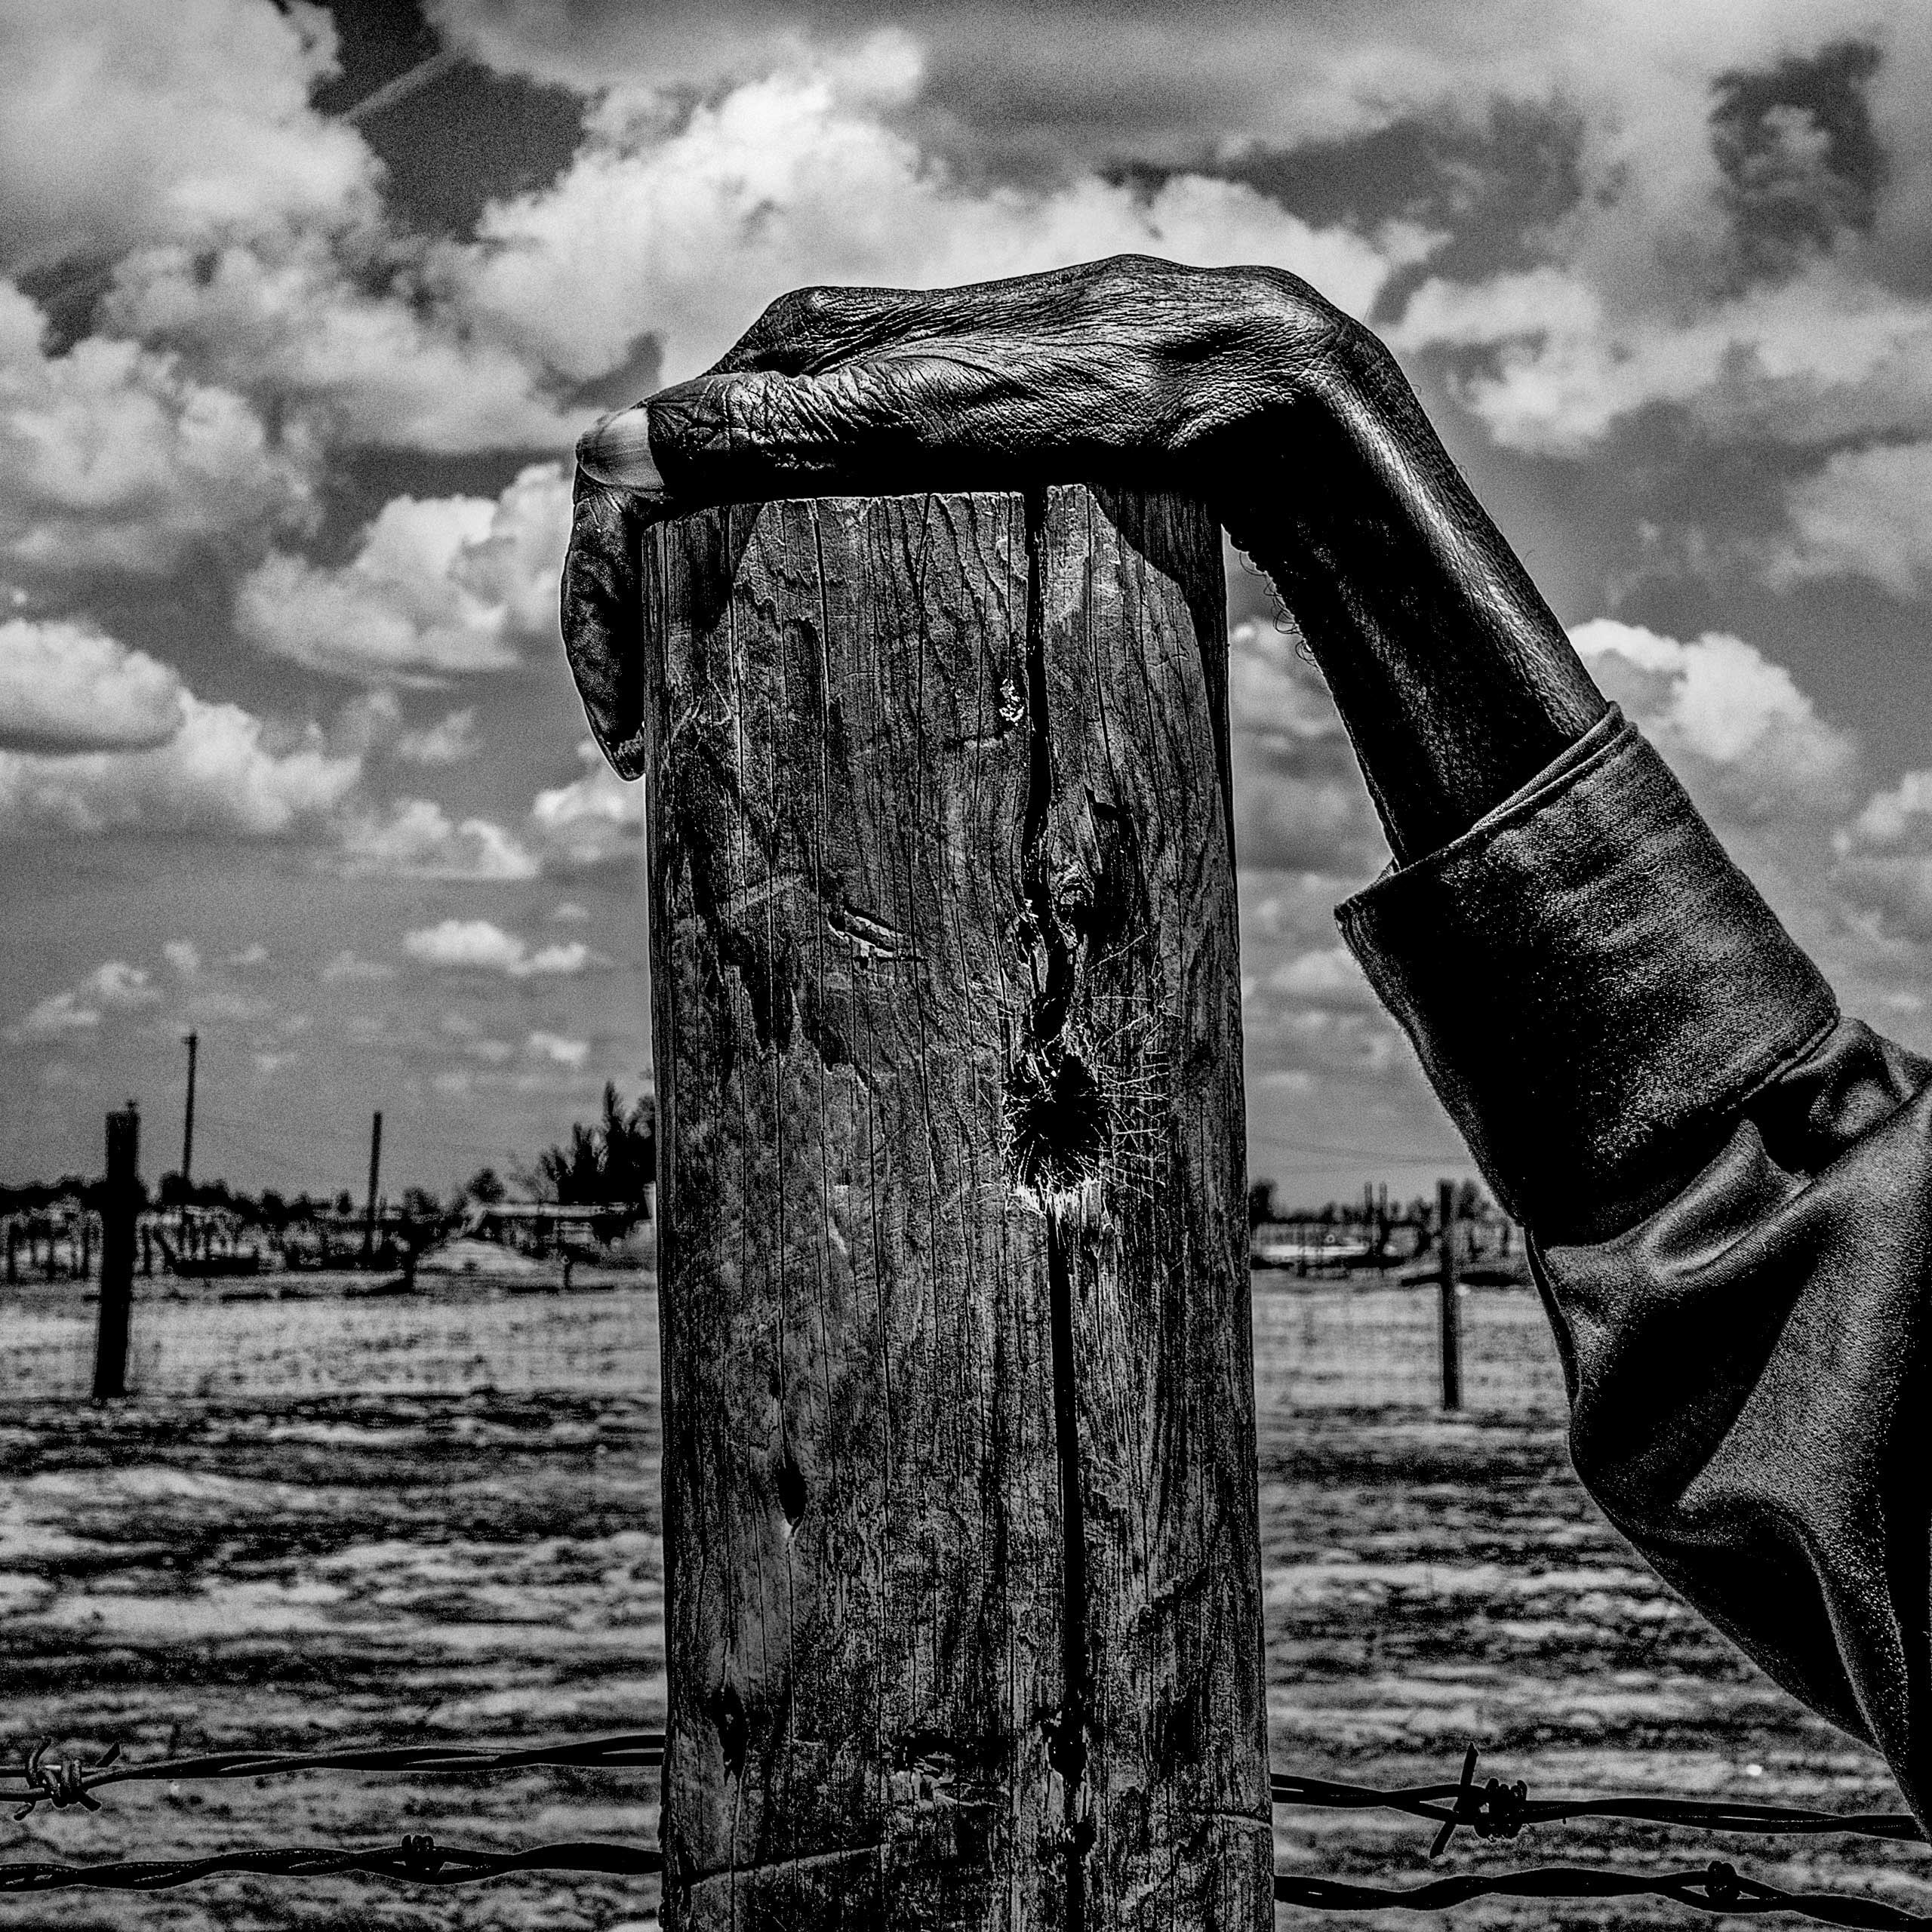 Fence post, Allensworth, Calif., May 9, 2014. Allensworth is a community where  54% of the population live below the poverty level.